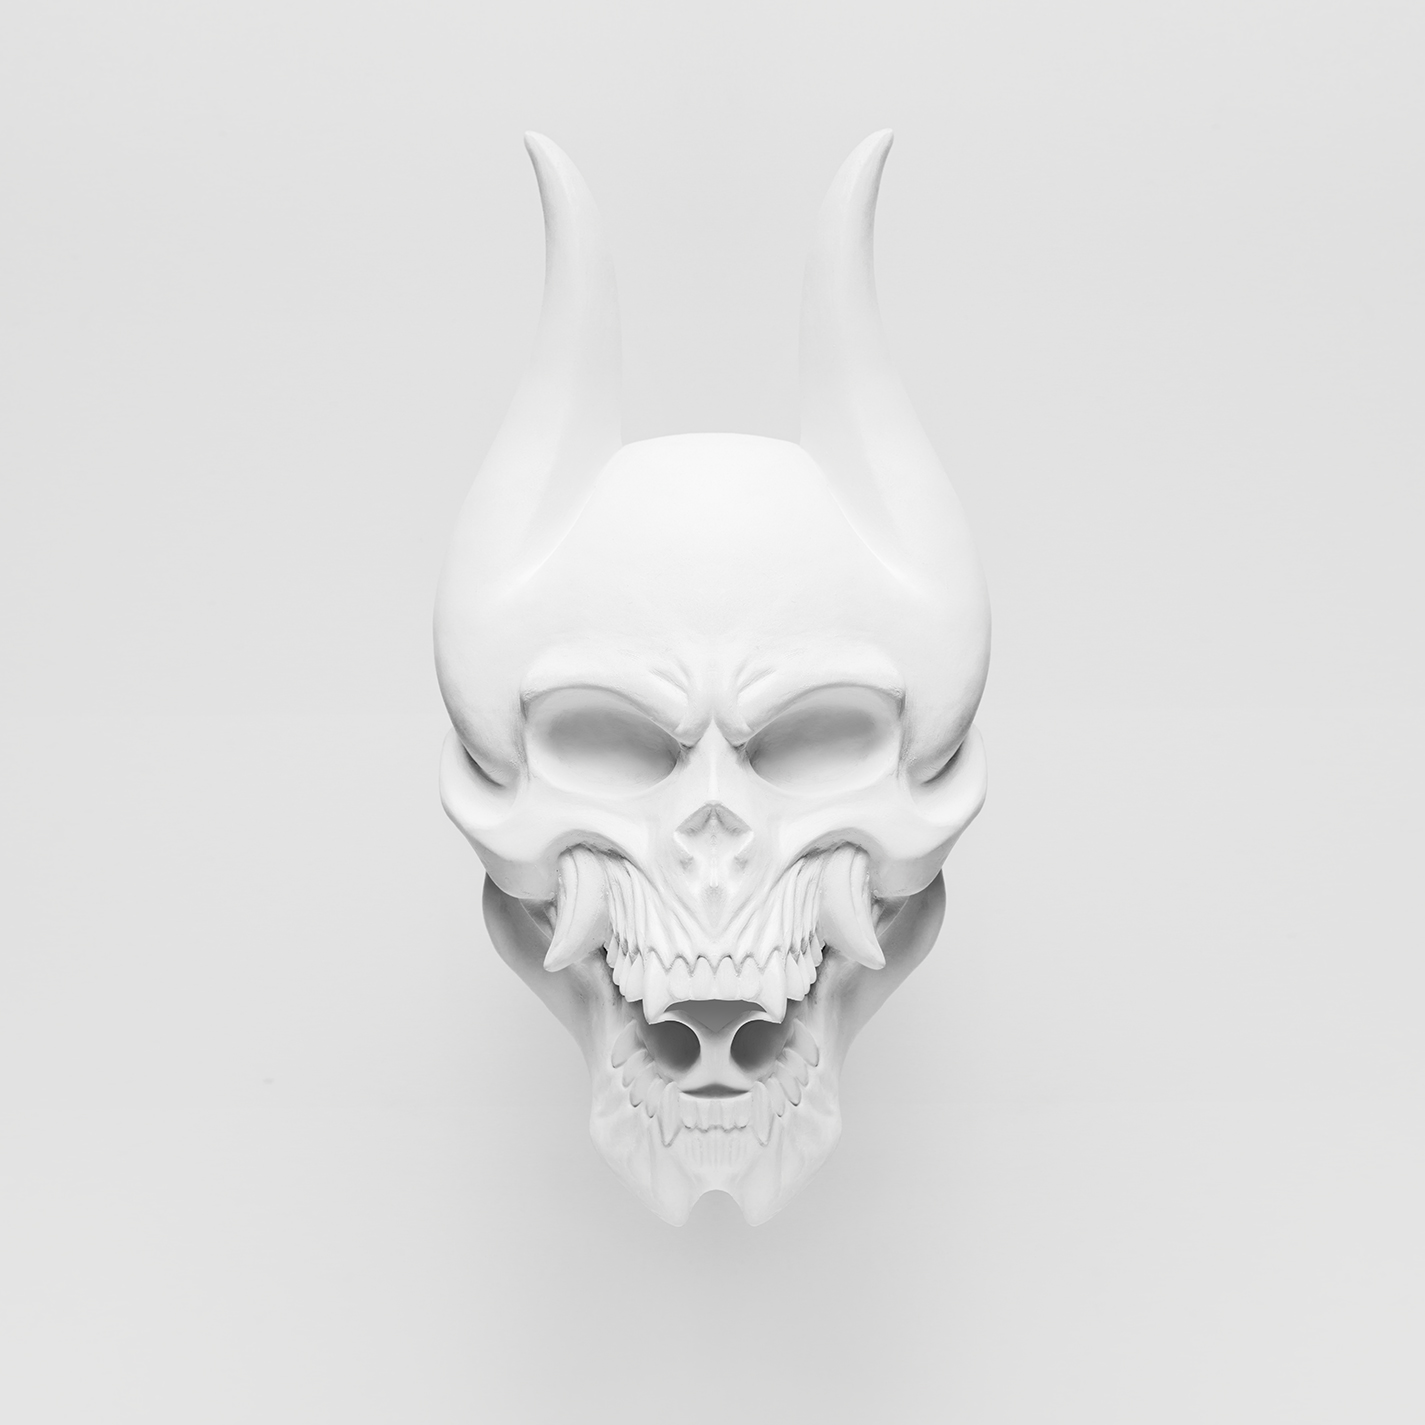 Trivium – Silence in the Snow Review